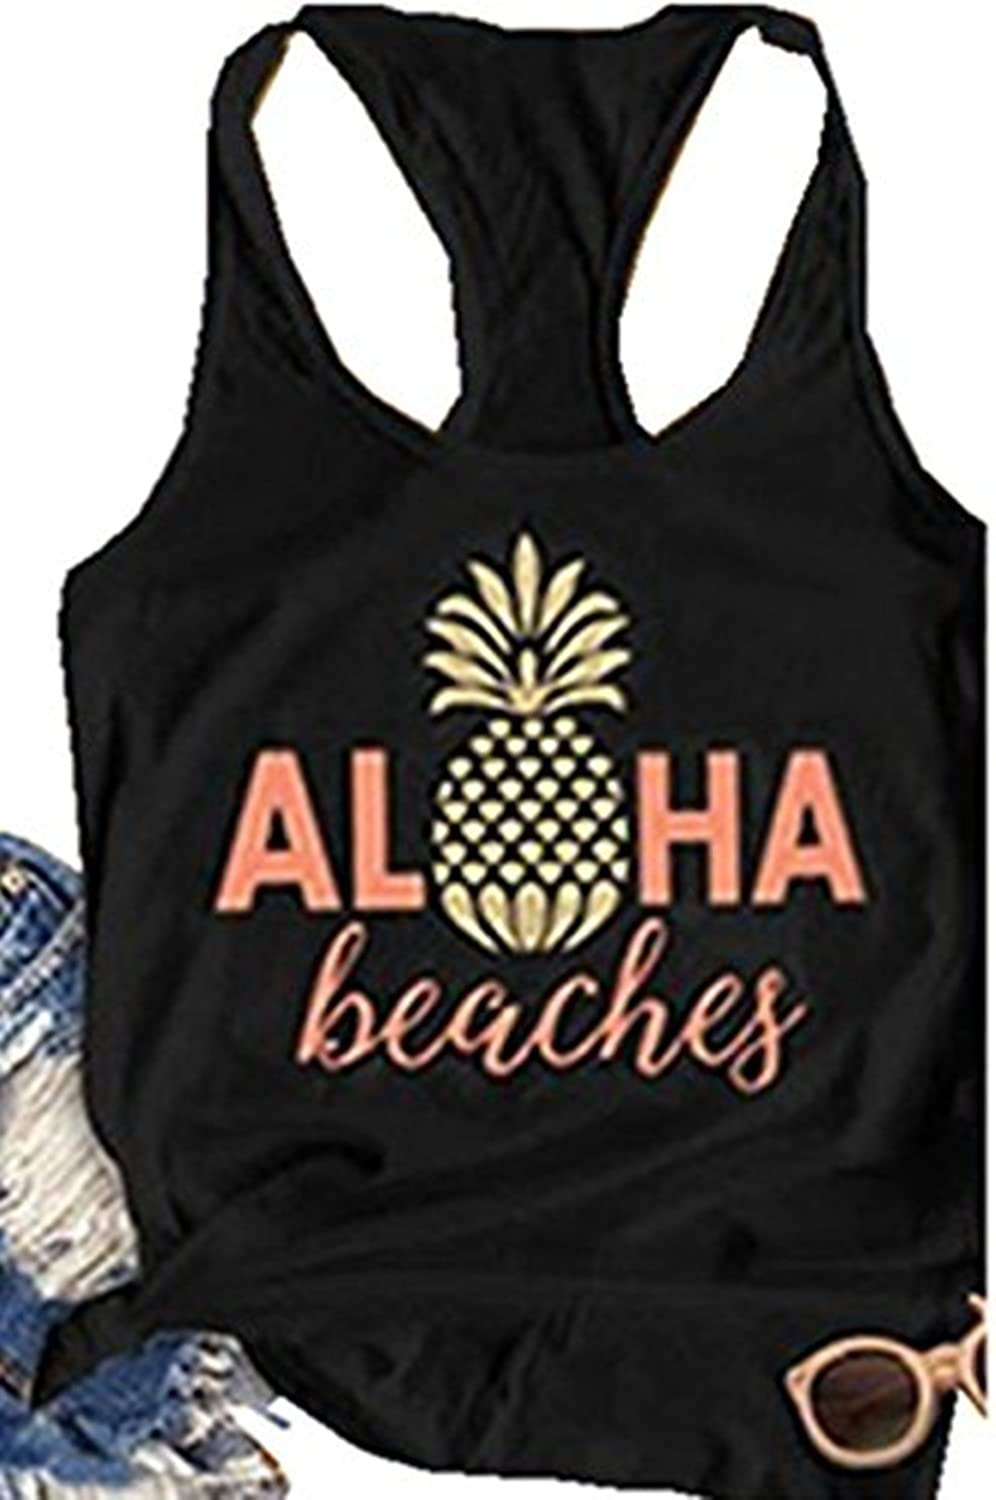 dc8f0d23dfa40 ... Beaches Letters Pineapple Print Graphic Tank T-shirt  ,Sleeveless,Racerback Cami Tee Great Match with Jeans,Shorts, Pants. Suit  for Spring,Summer,Autumn.